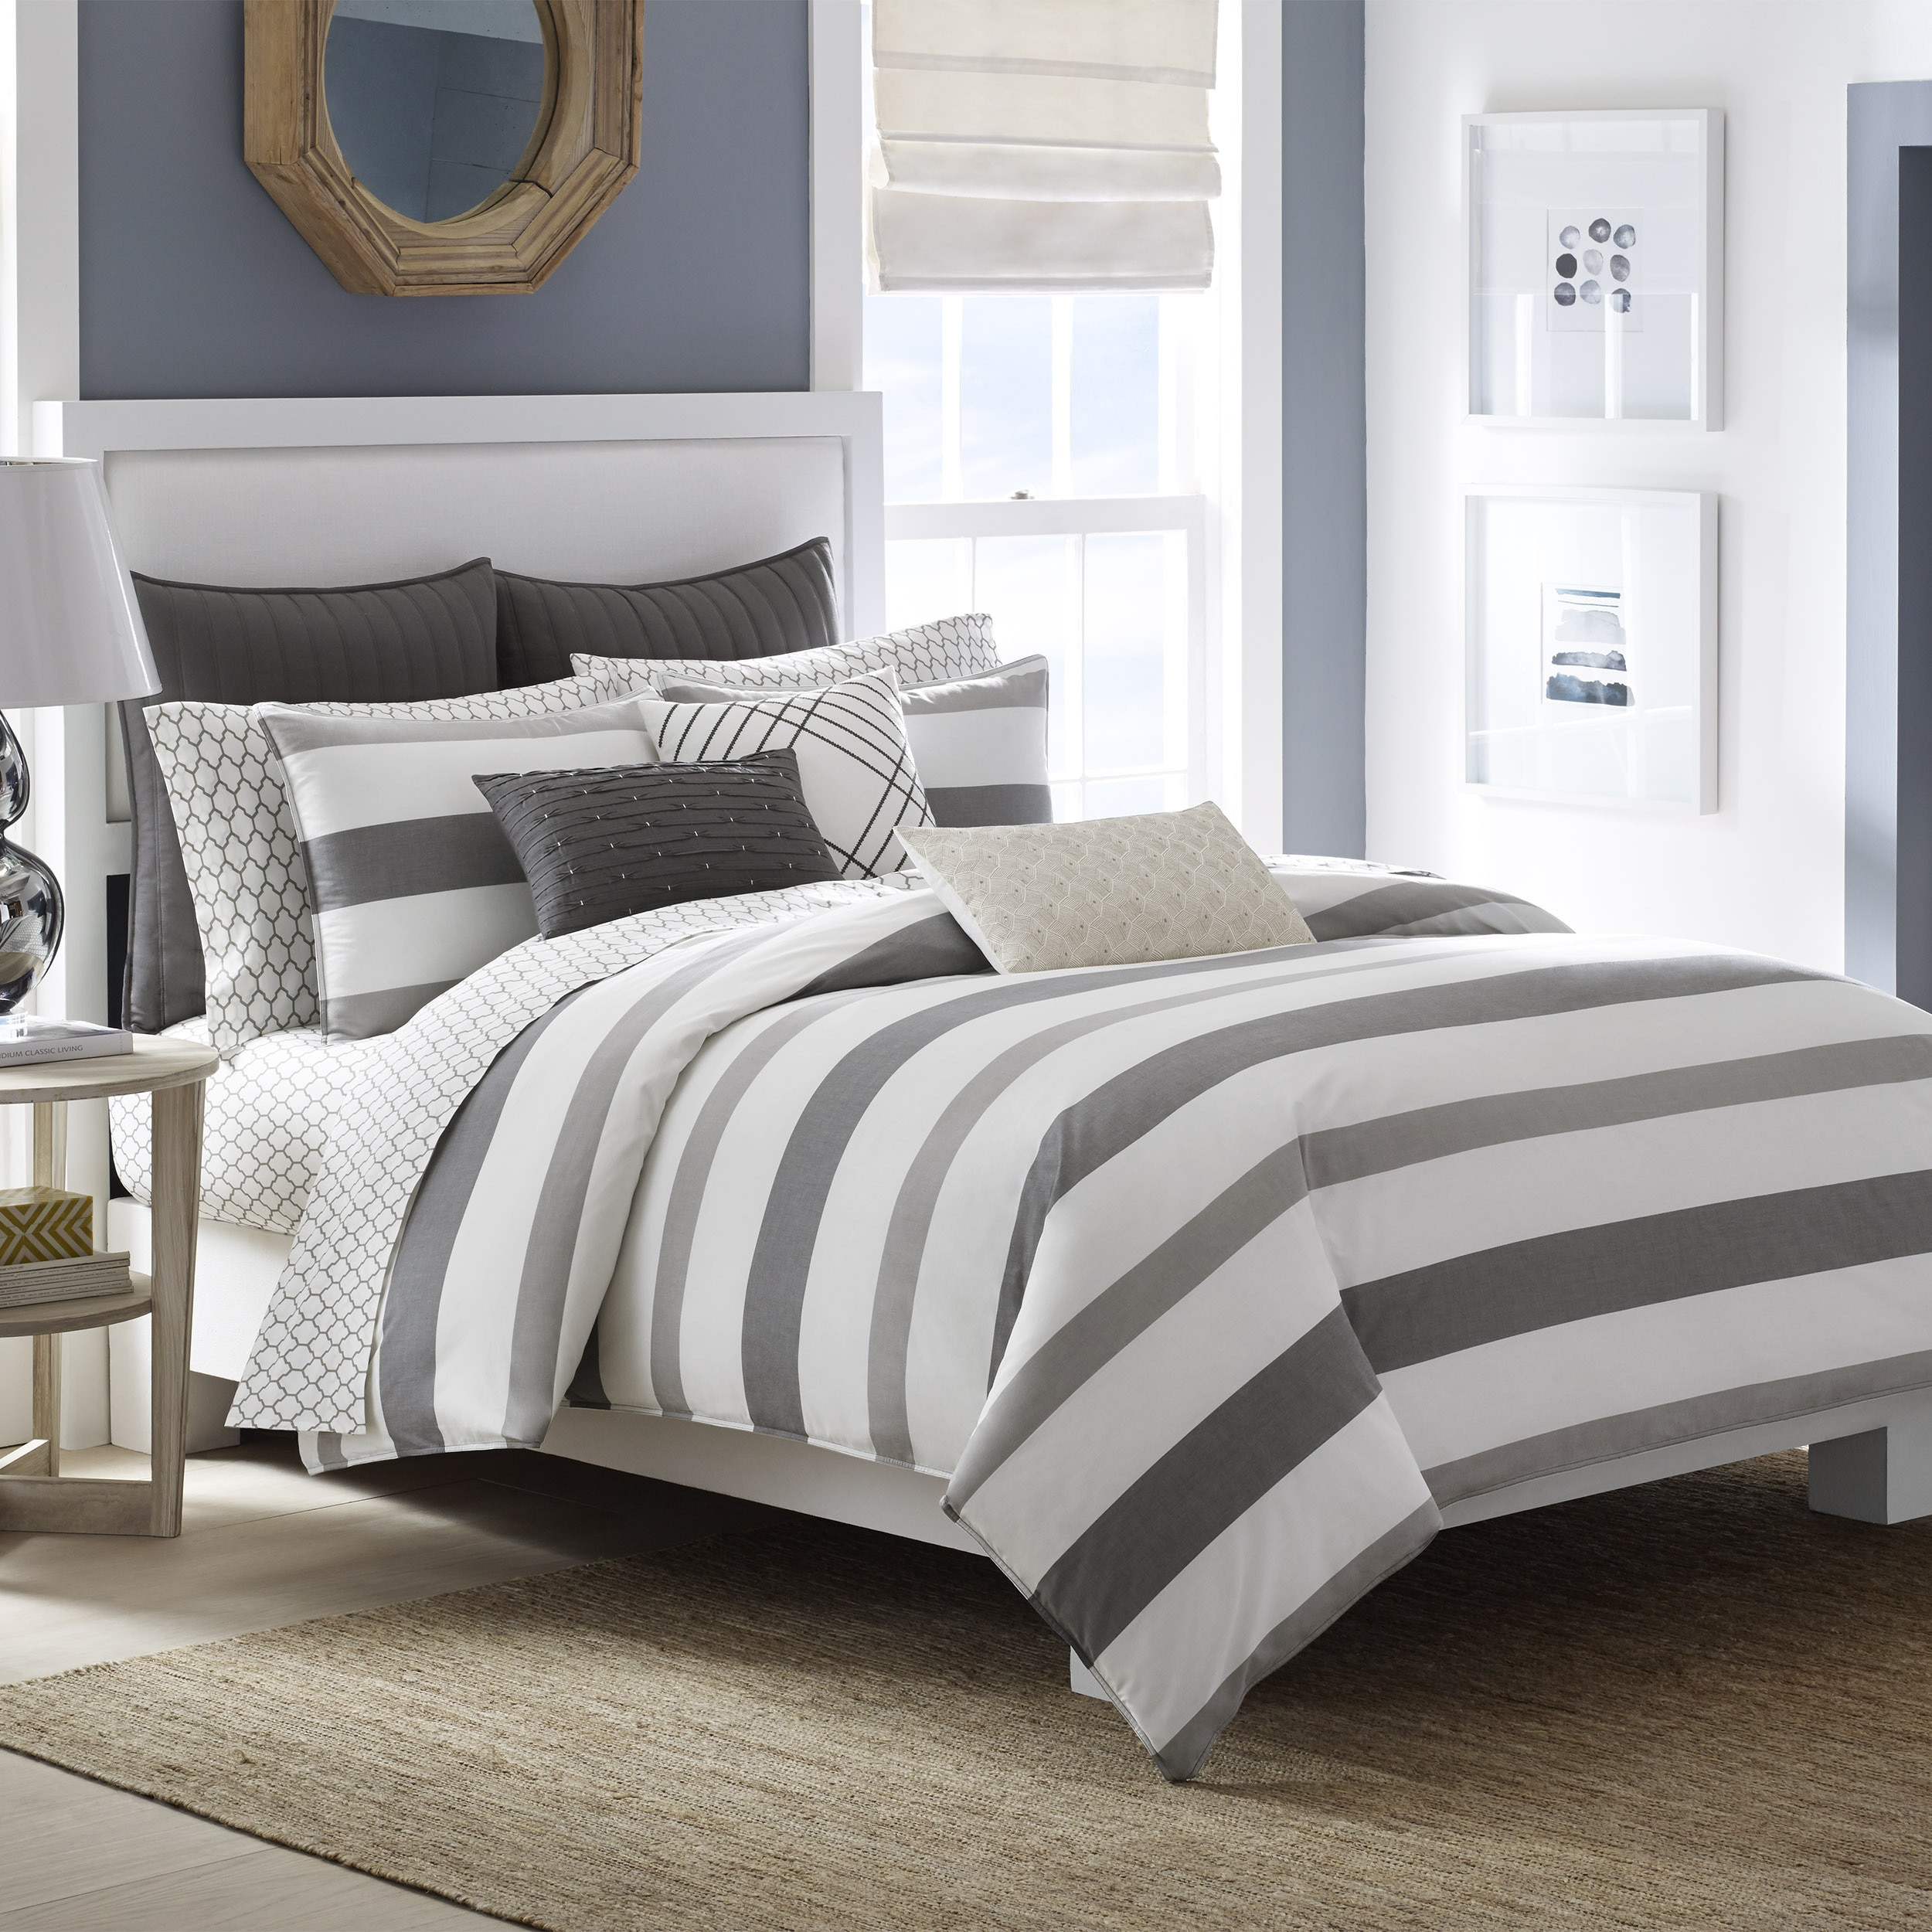 sets set nautica plans plush red hotel new intended york by bedding throughout reversible comforter burgundy bridgeport j queen for idea king